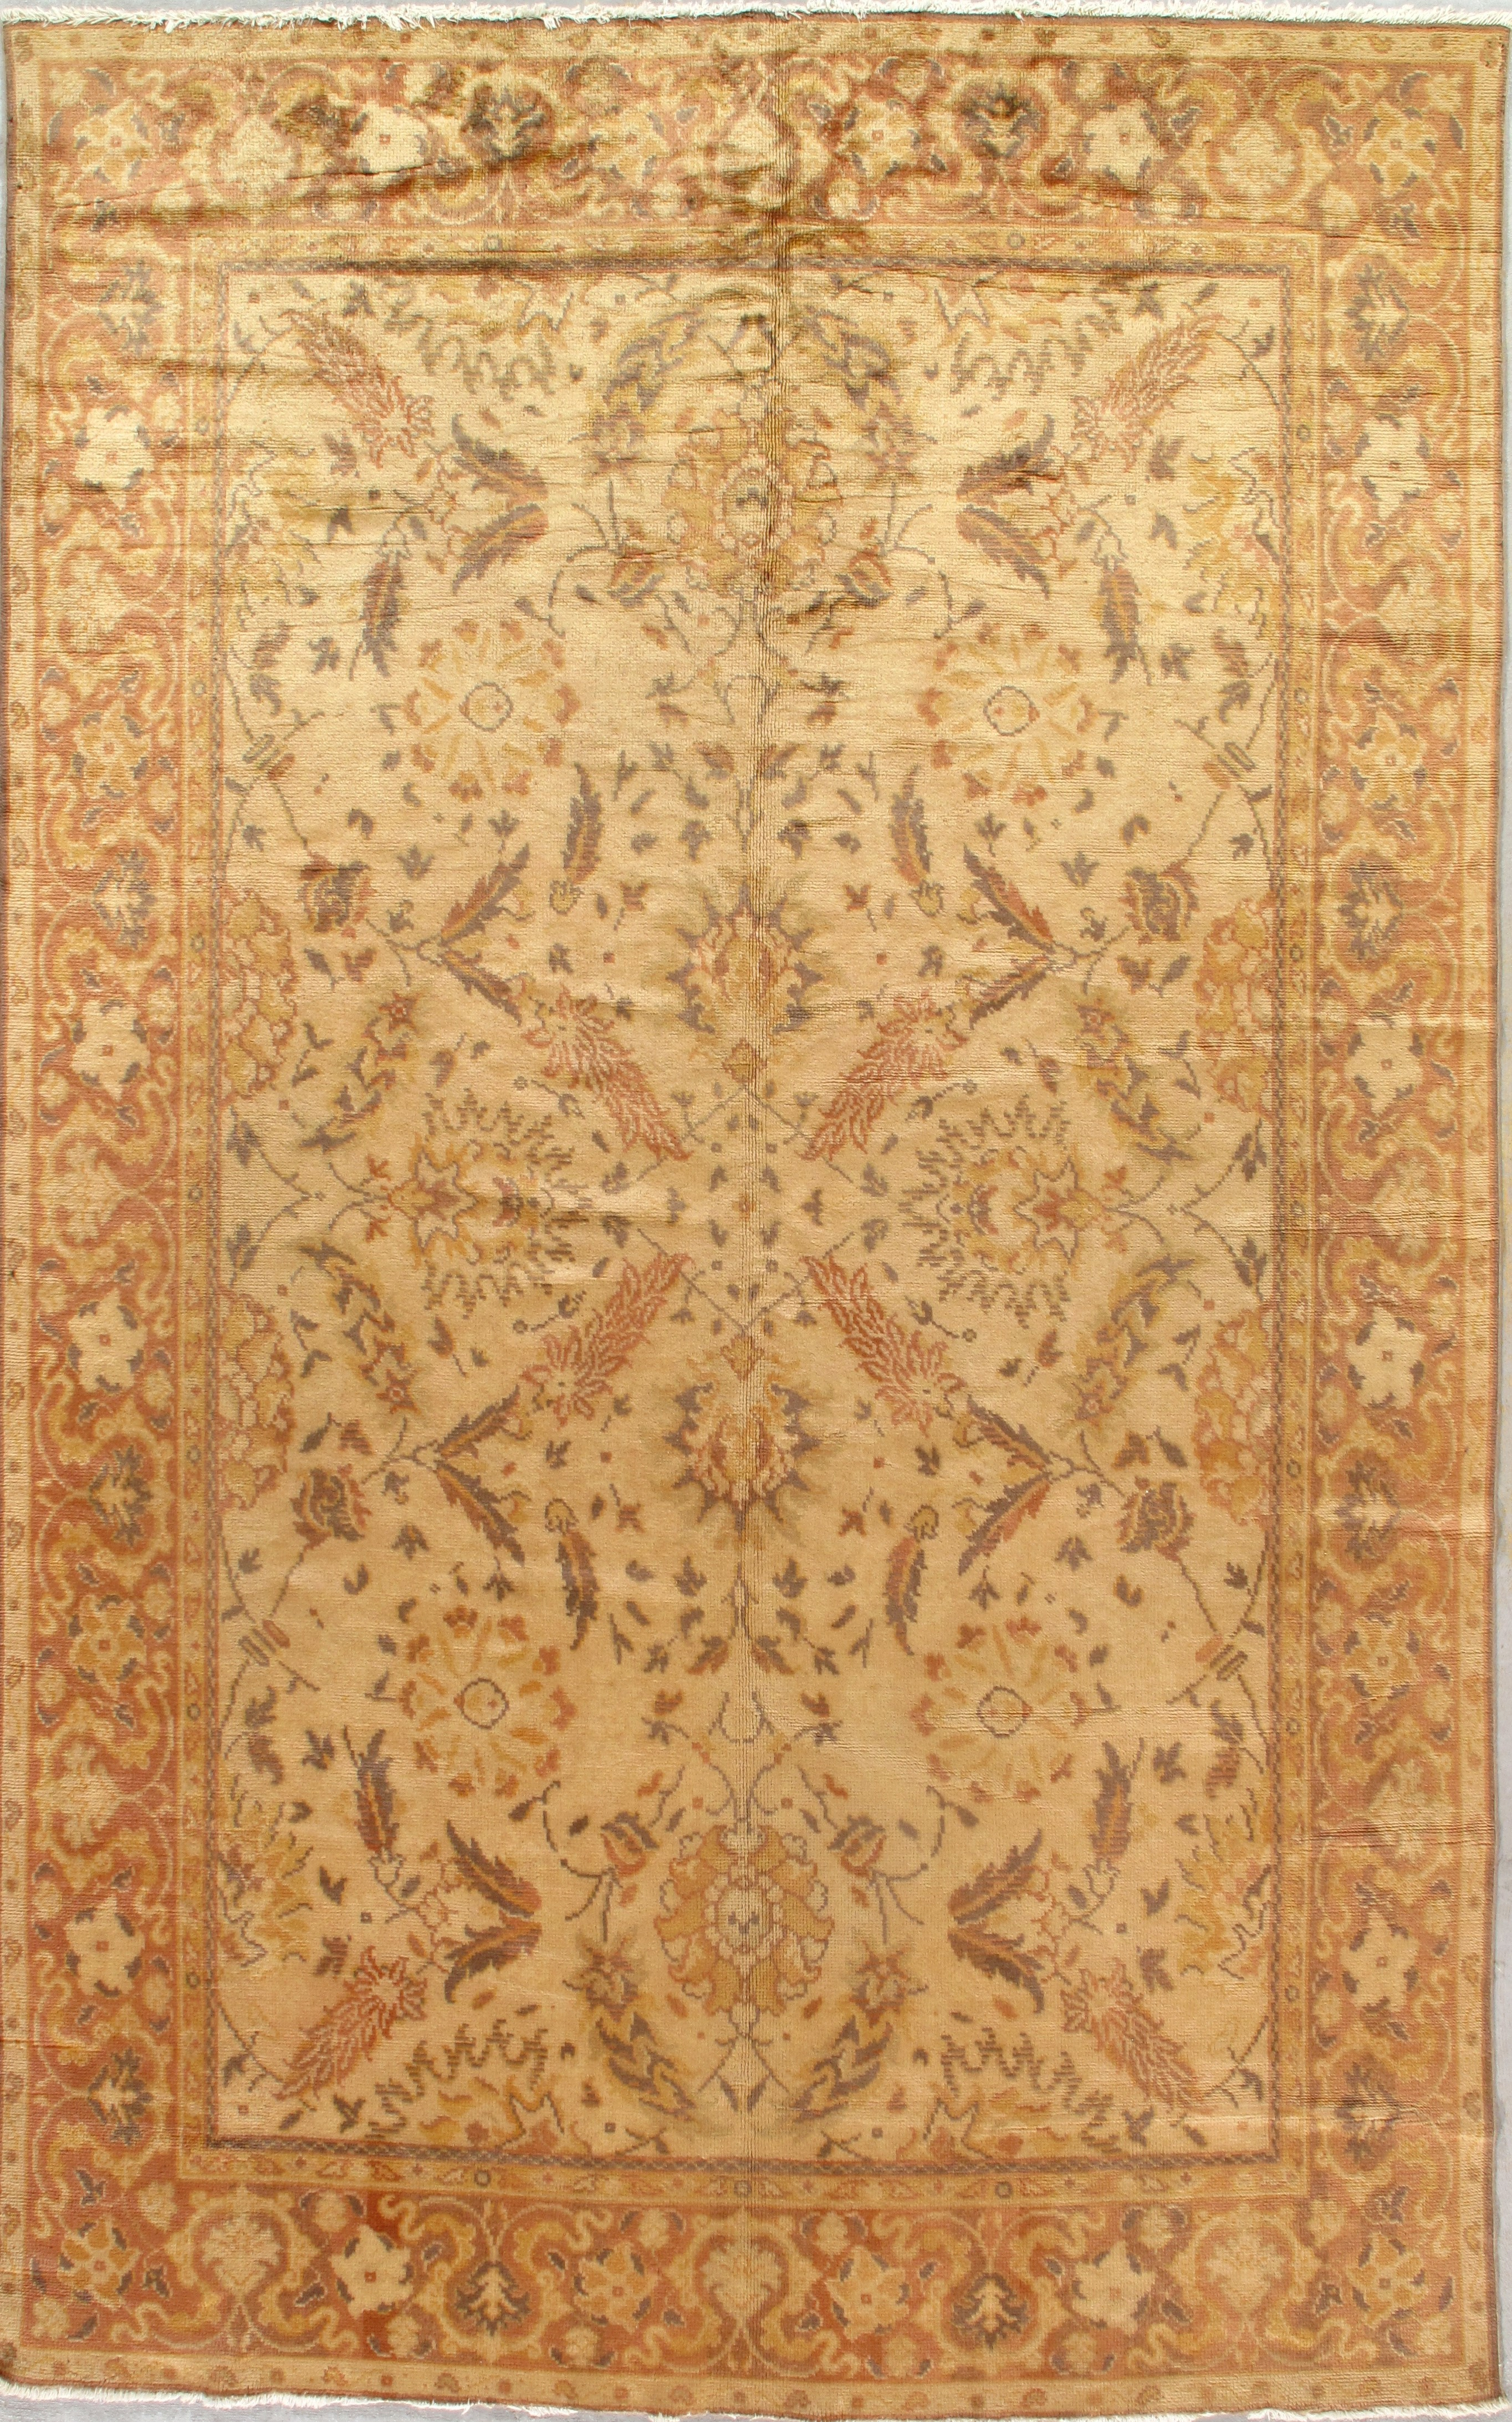 European Rug 2758 First Rugs Rugs Antique Rugs